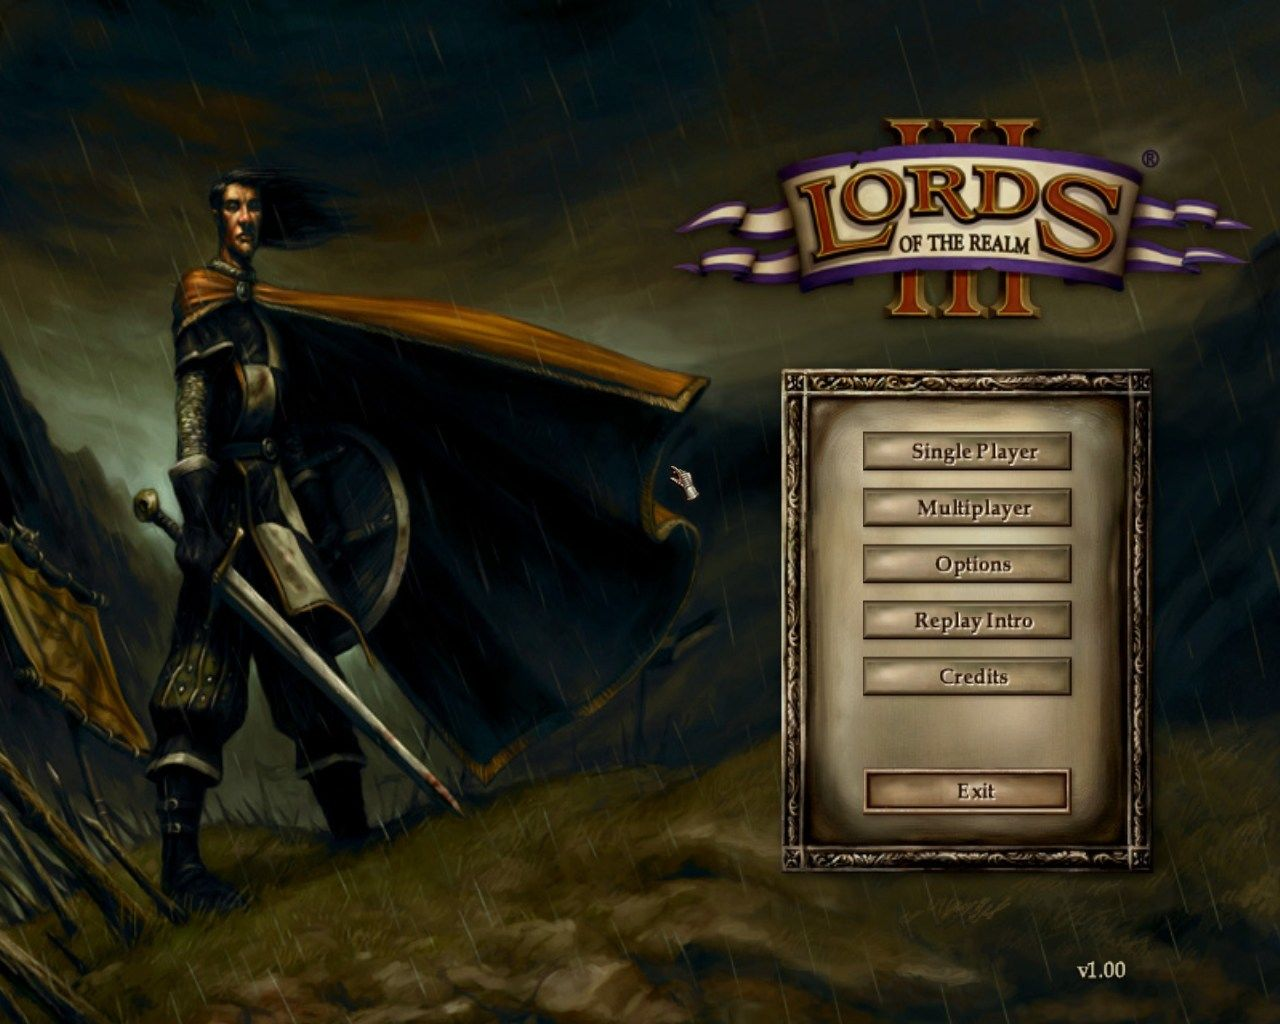 Lords of the realm 3 game free download full version for pc.